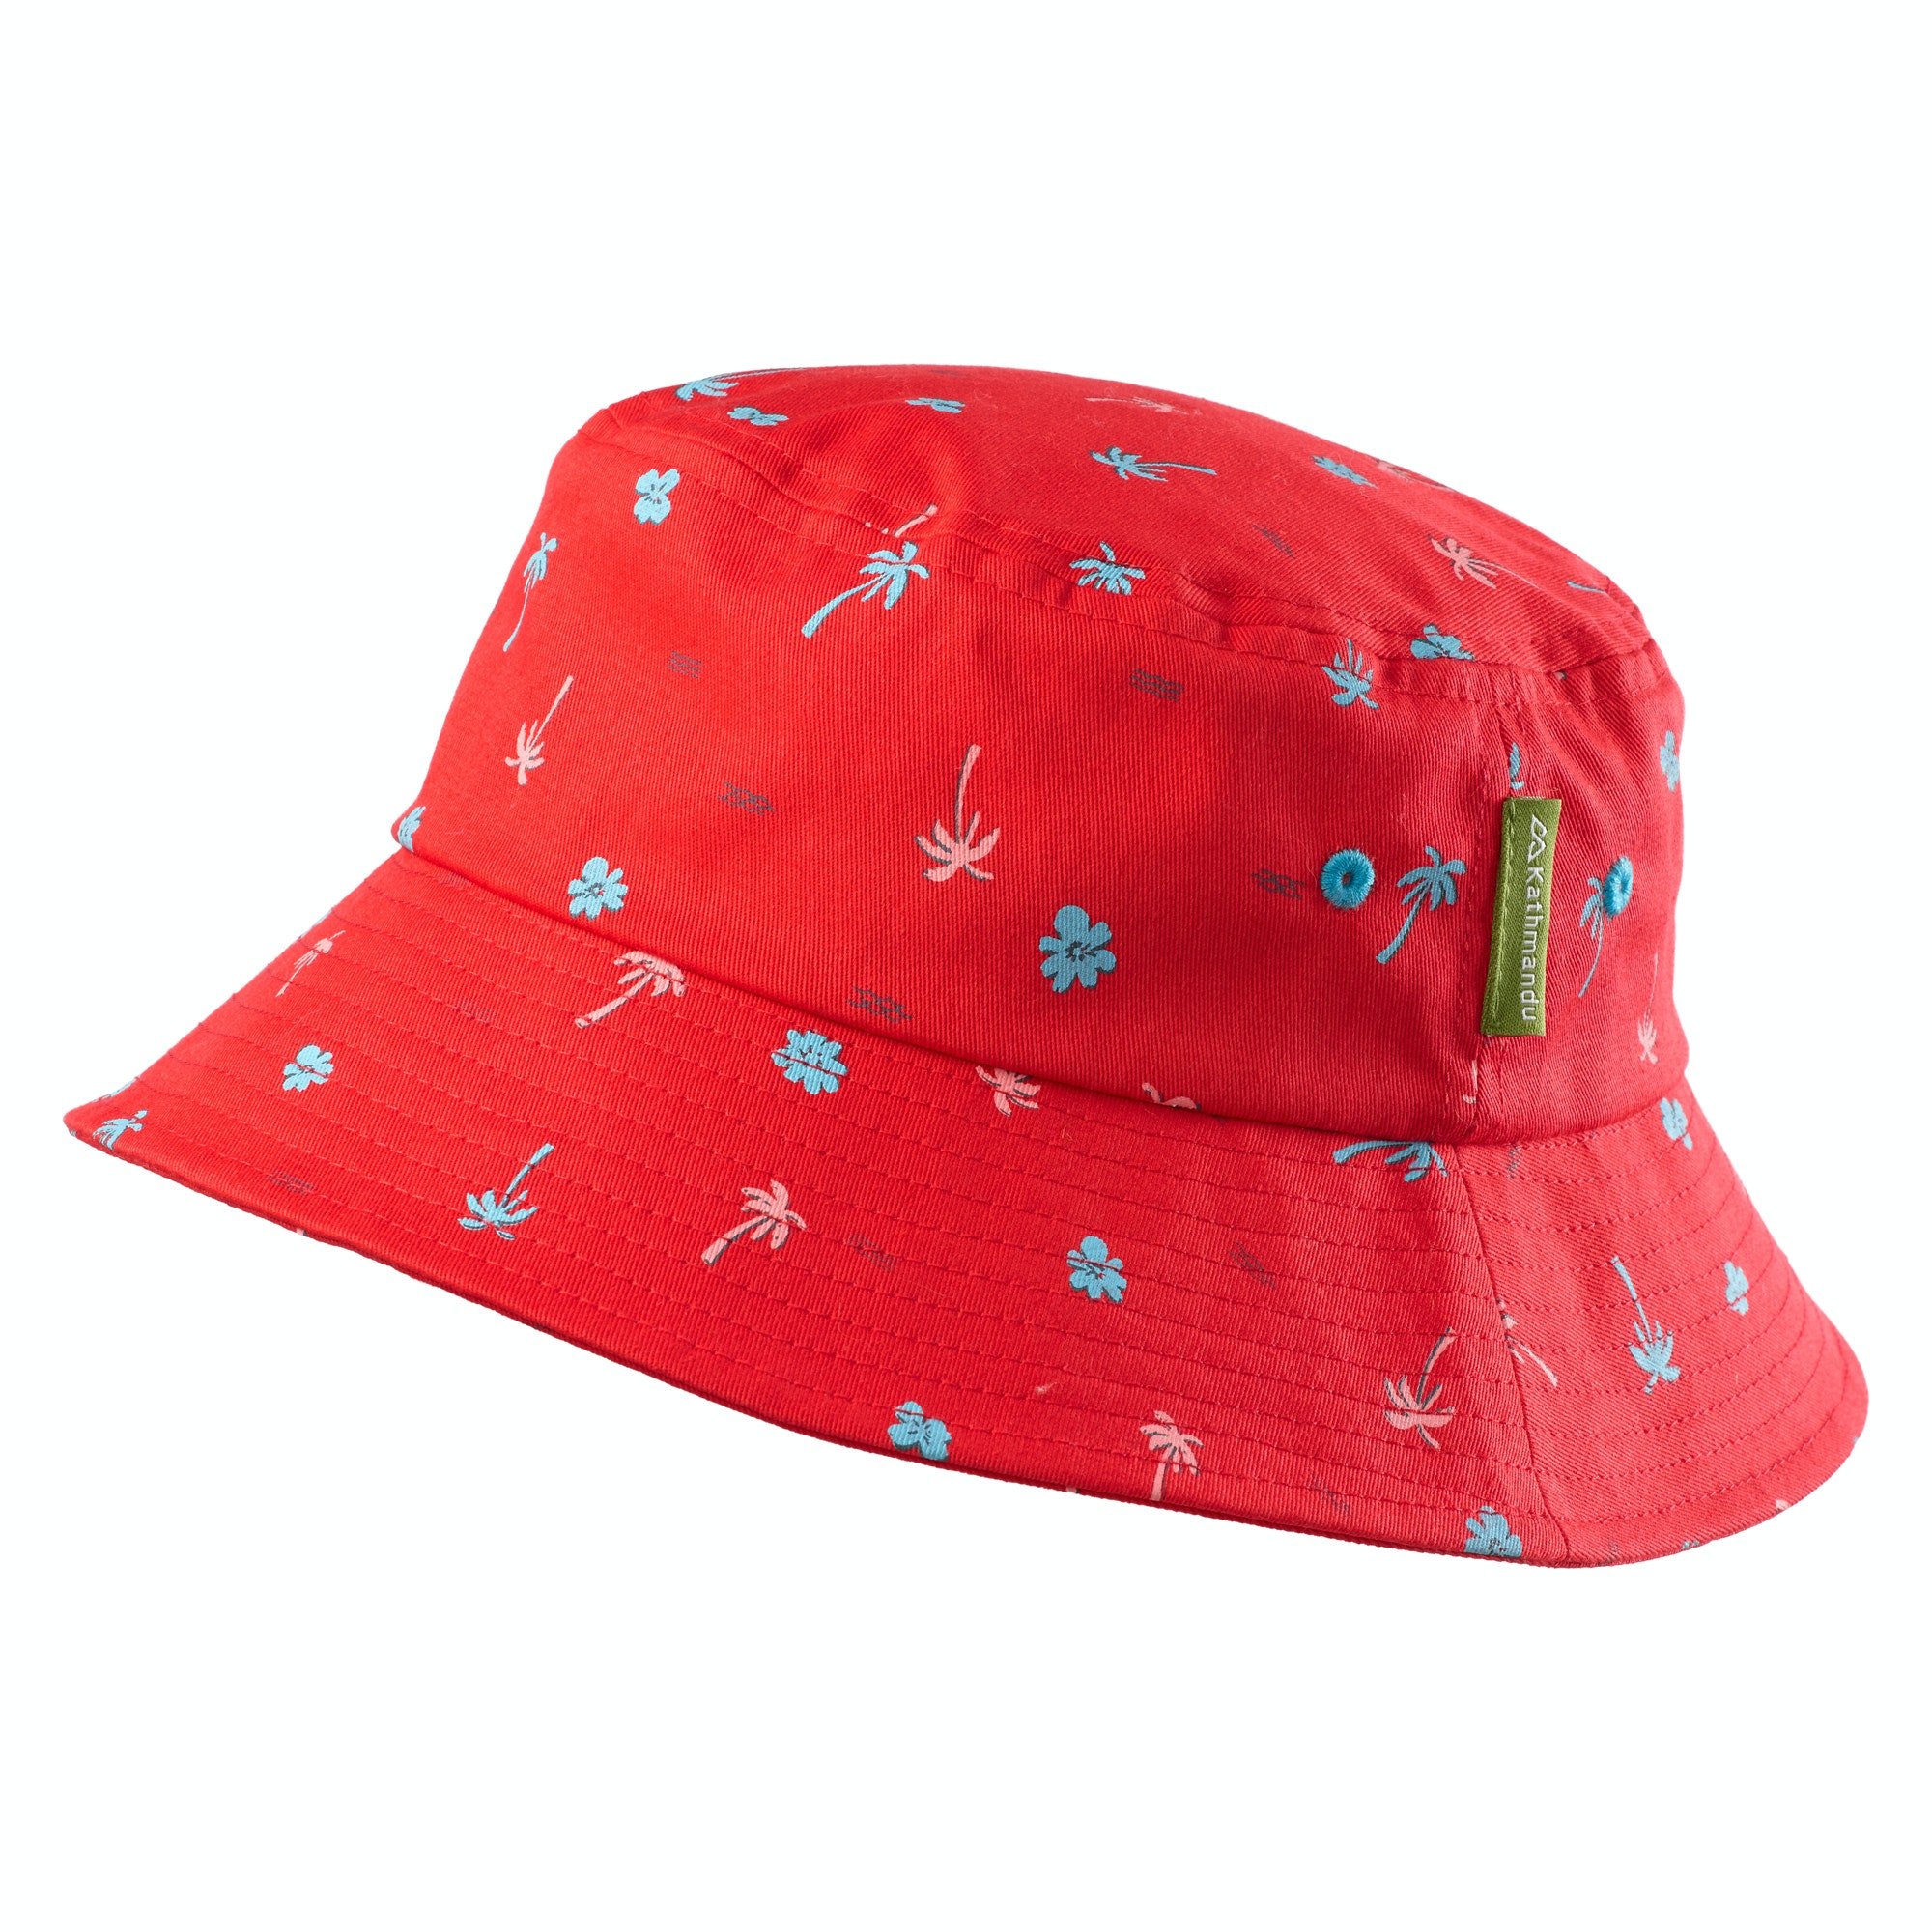 Kids Sun Hats Sale! Shop flip13bubble.tk's huge selection of Kids Sun Hats and save big! Over 10 styles available. FREE Shipping & Exchanges, and a % price guarantee!